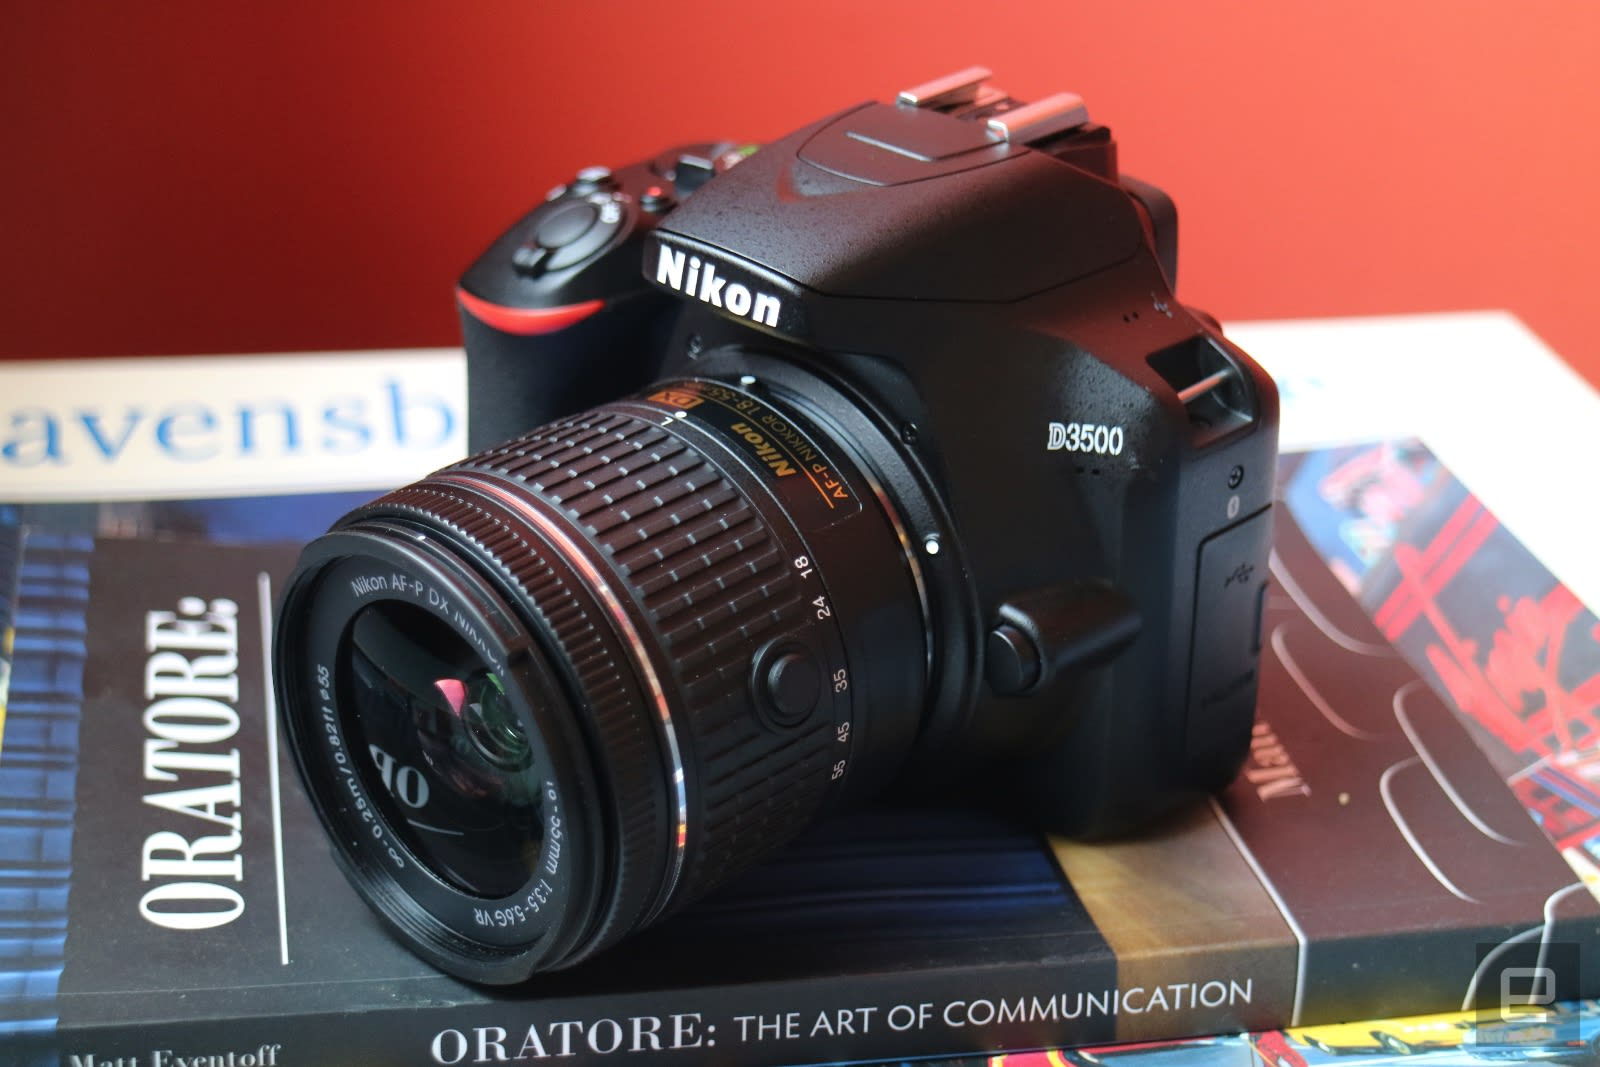 Nikon's D3500 is a compact DSLR for beginners